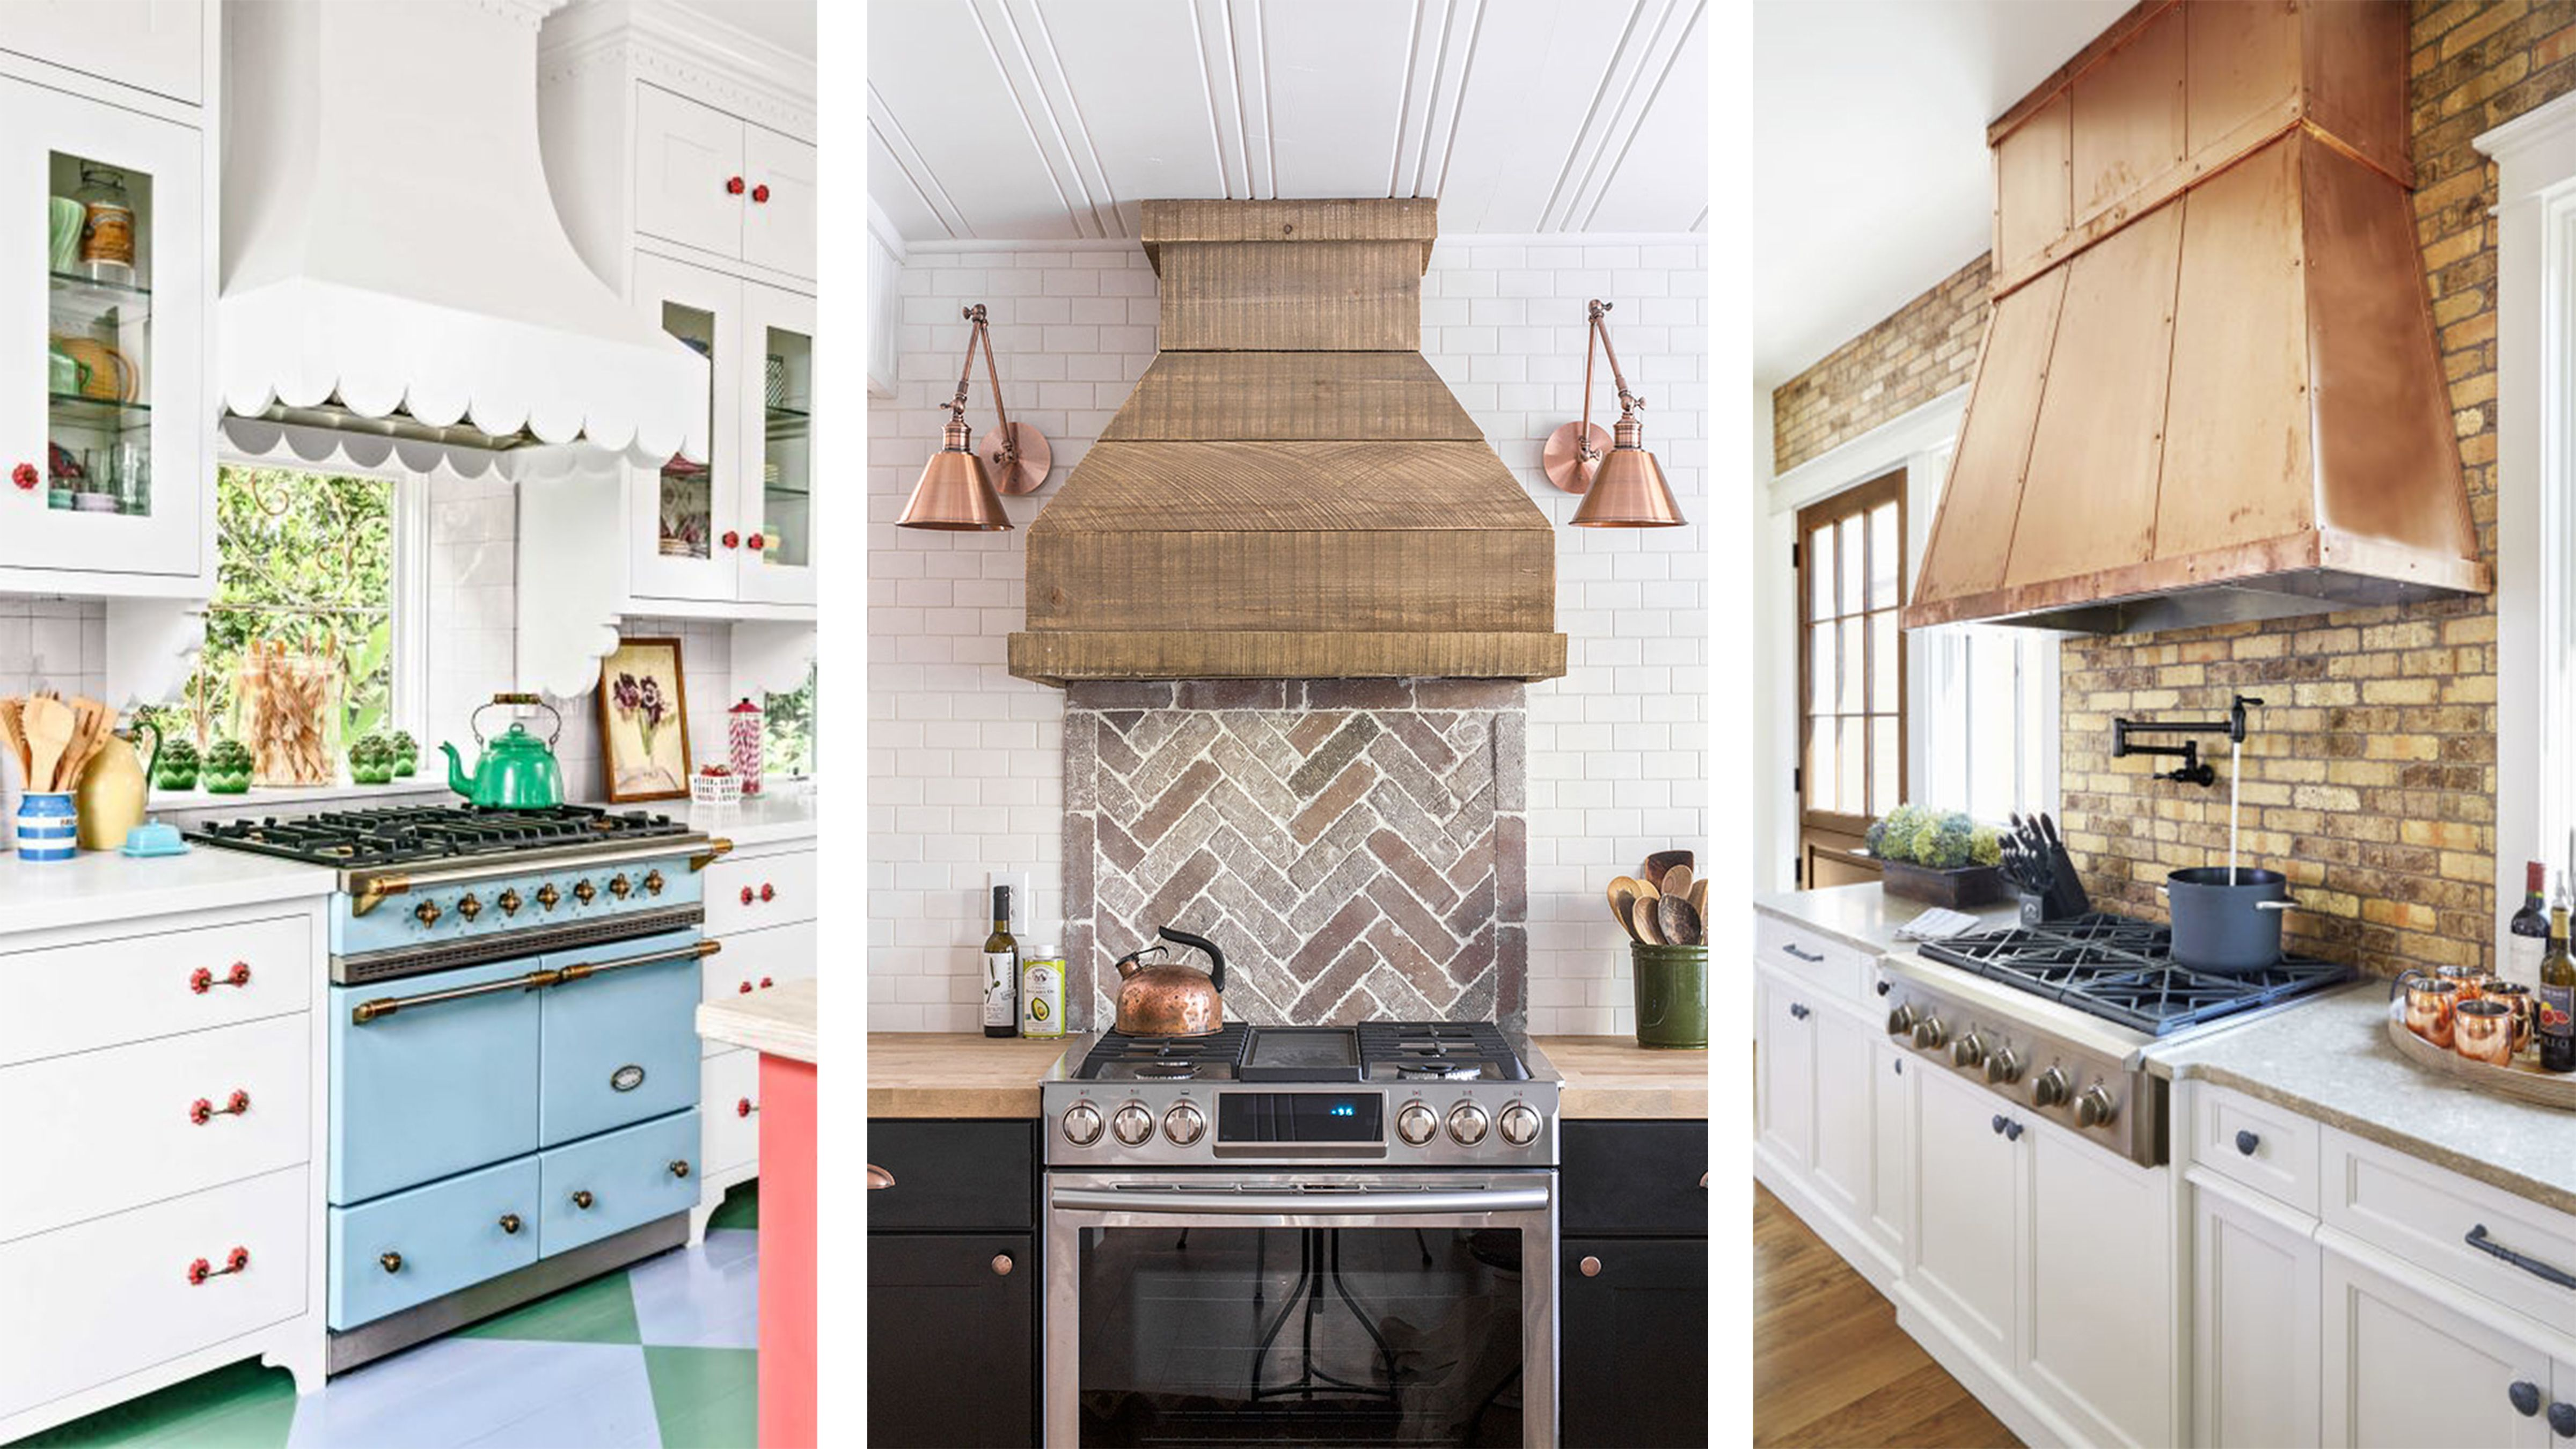 a rustic city hood article kbd with feel viking vent design coast big kitchen from outdoor